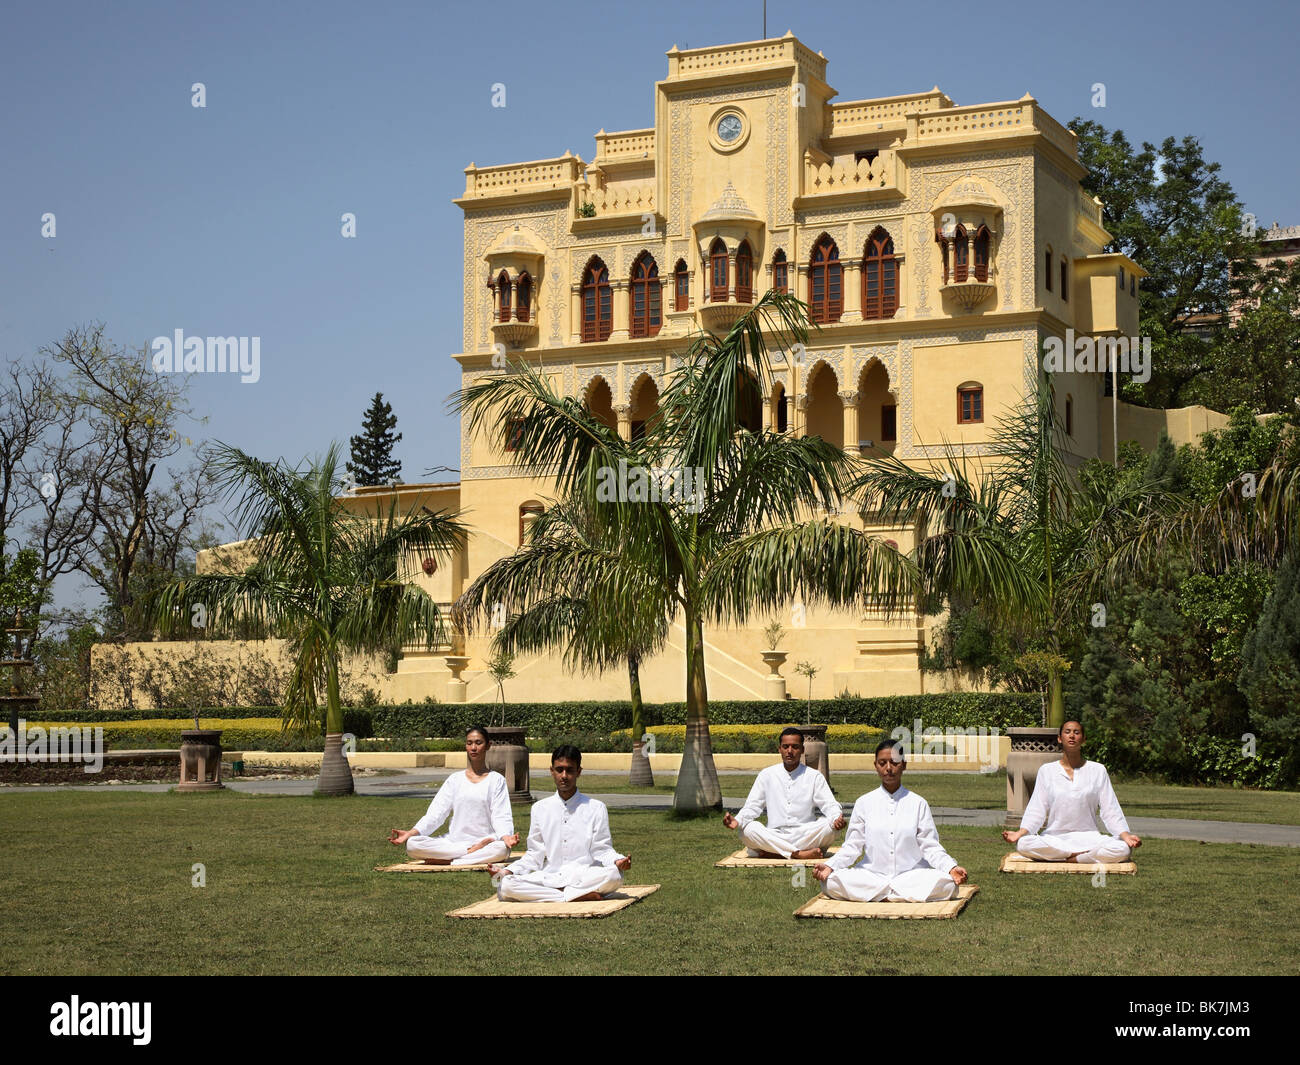 Yoga on the lawn in front of palace at Ananda in the